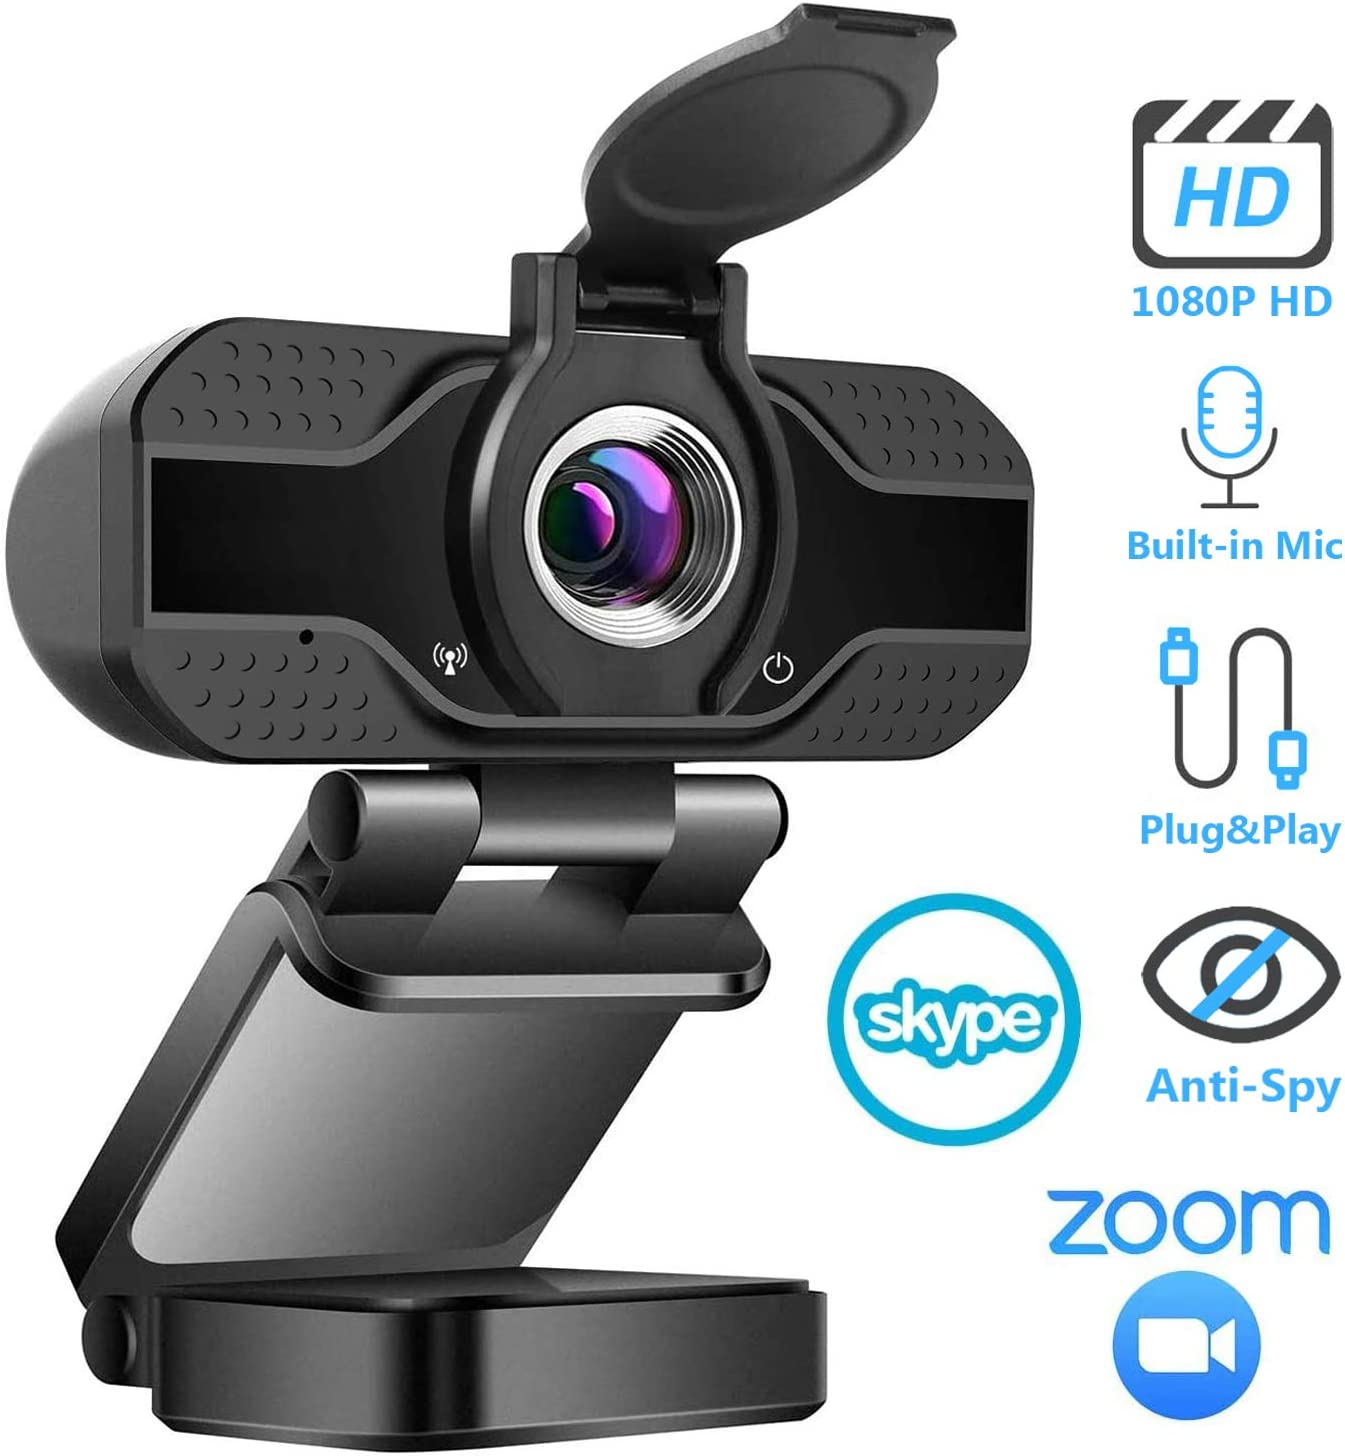 Webcam 1080P with Microphone & Privacy Cover, Full HD USB Camera for PC, Mac, Laptop, Desktop, Plug&Play, USB Web Camera with Auto Light Correction for YouTube Skype Video Calling Studying Conference